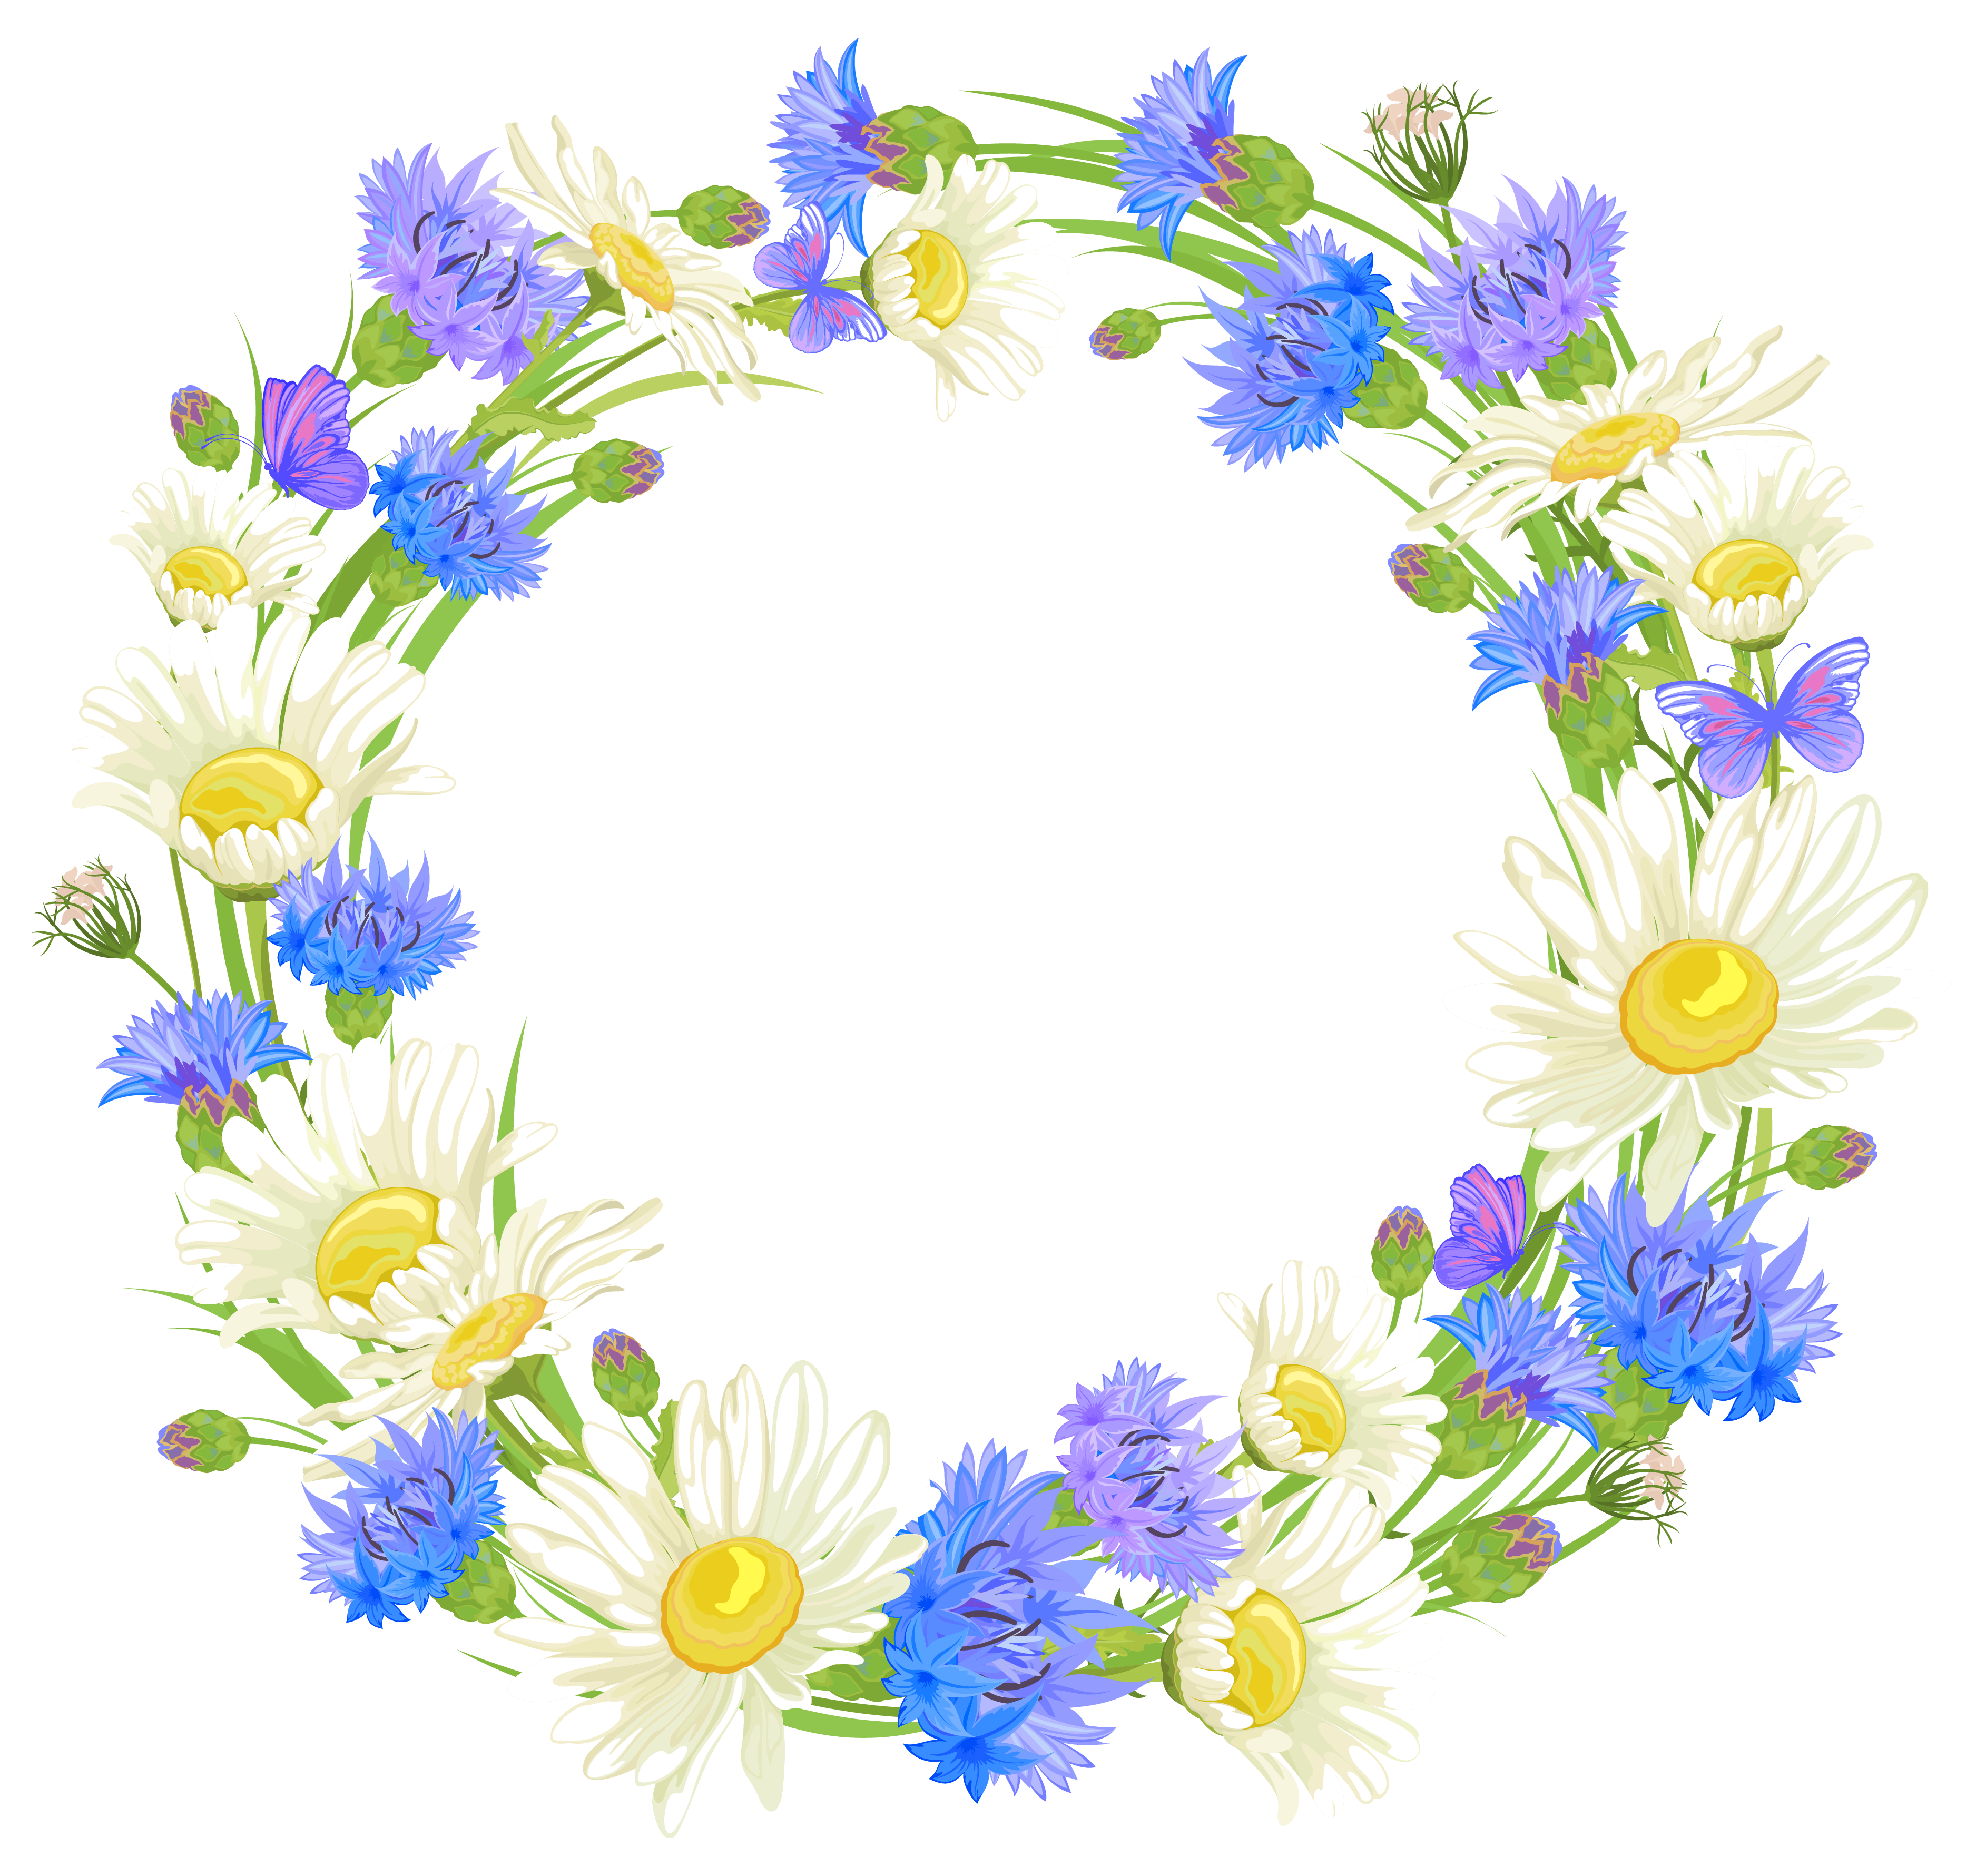 Camomile clipart real  png flowers Backgrounds clipart